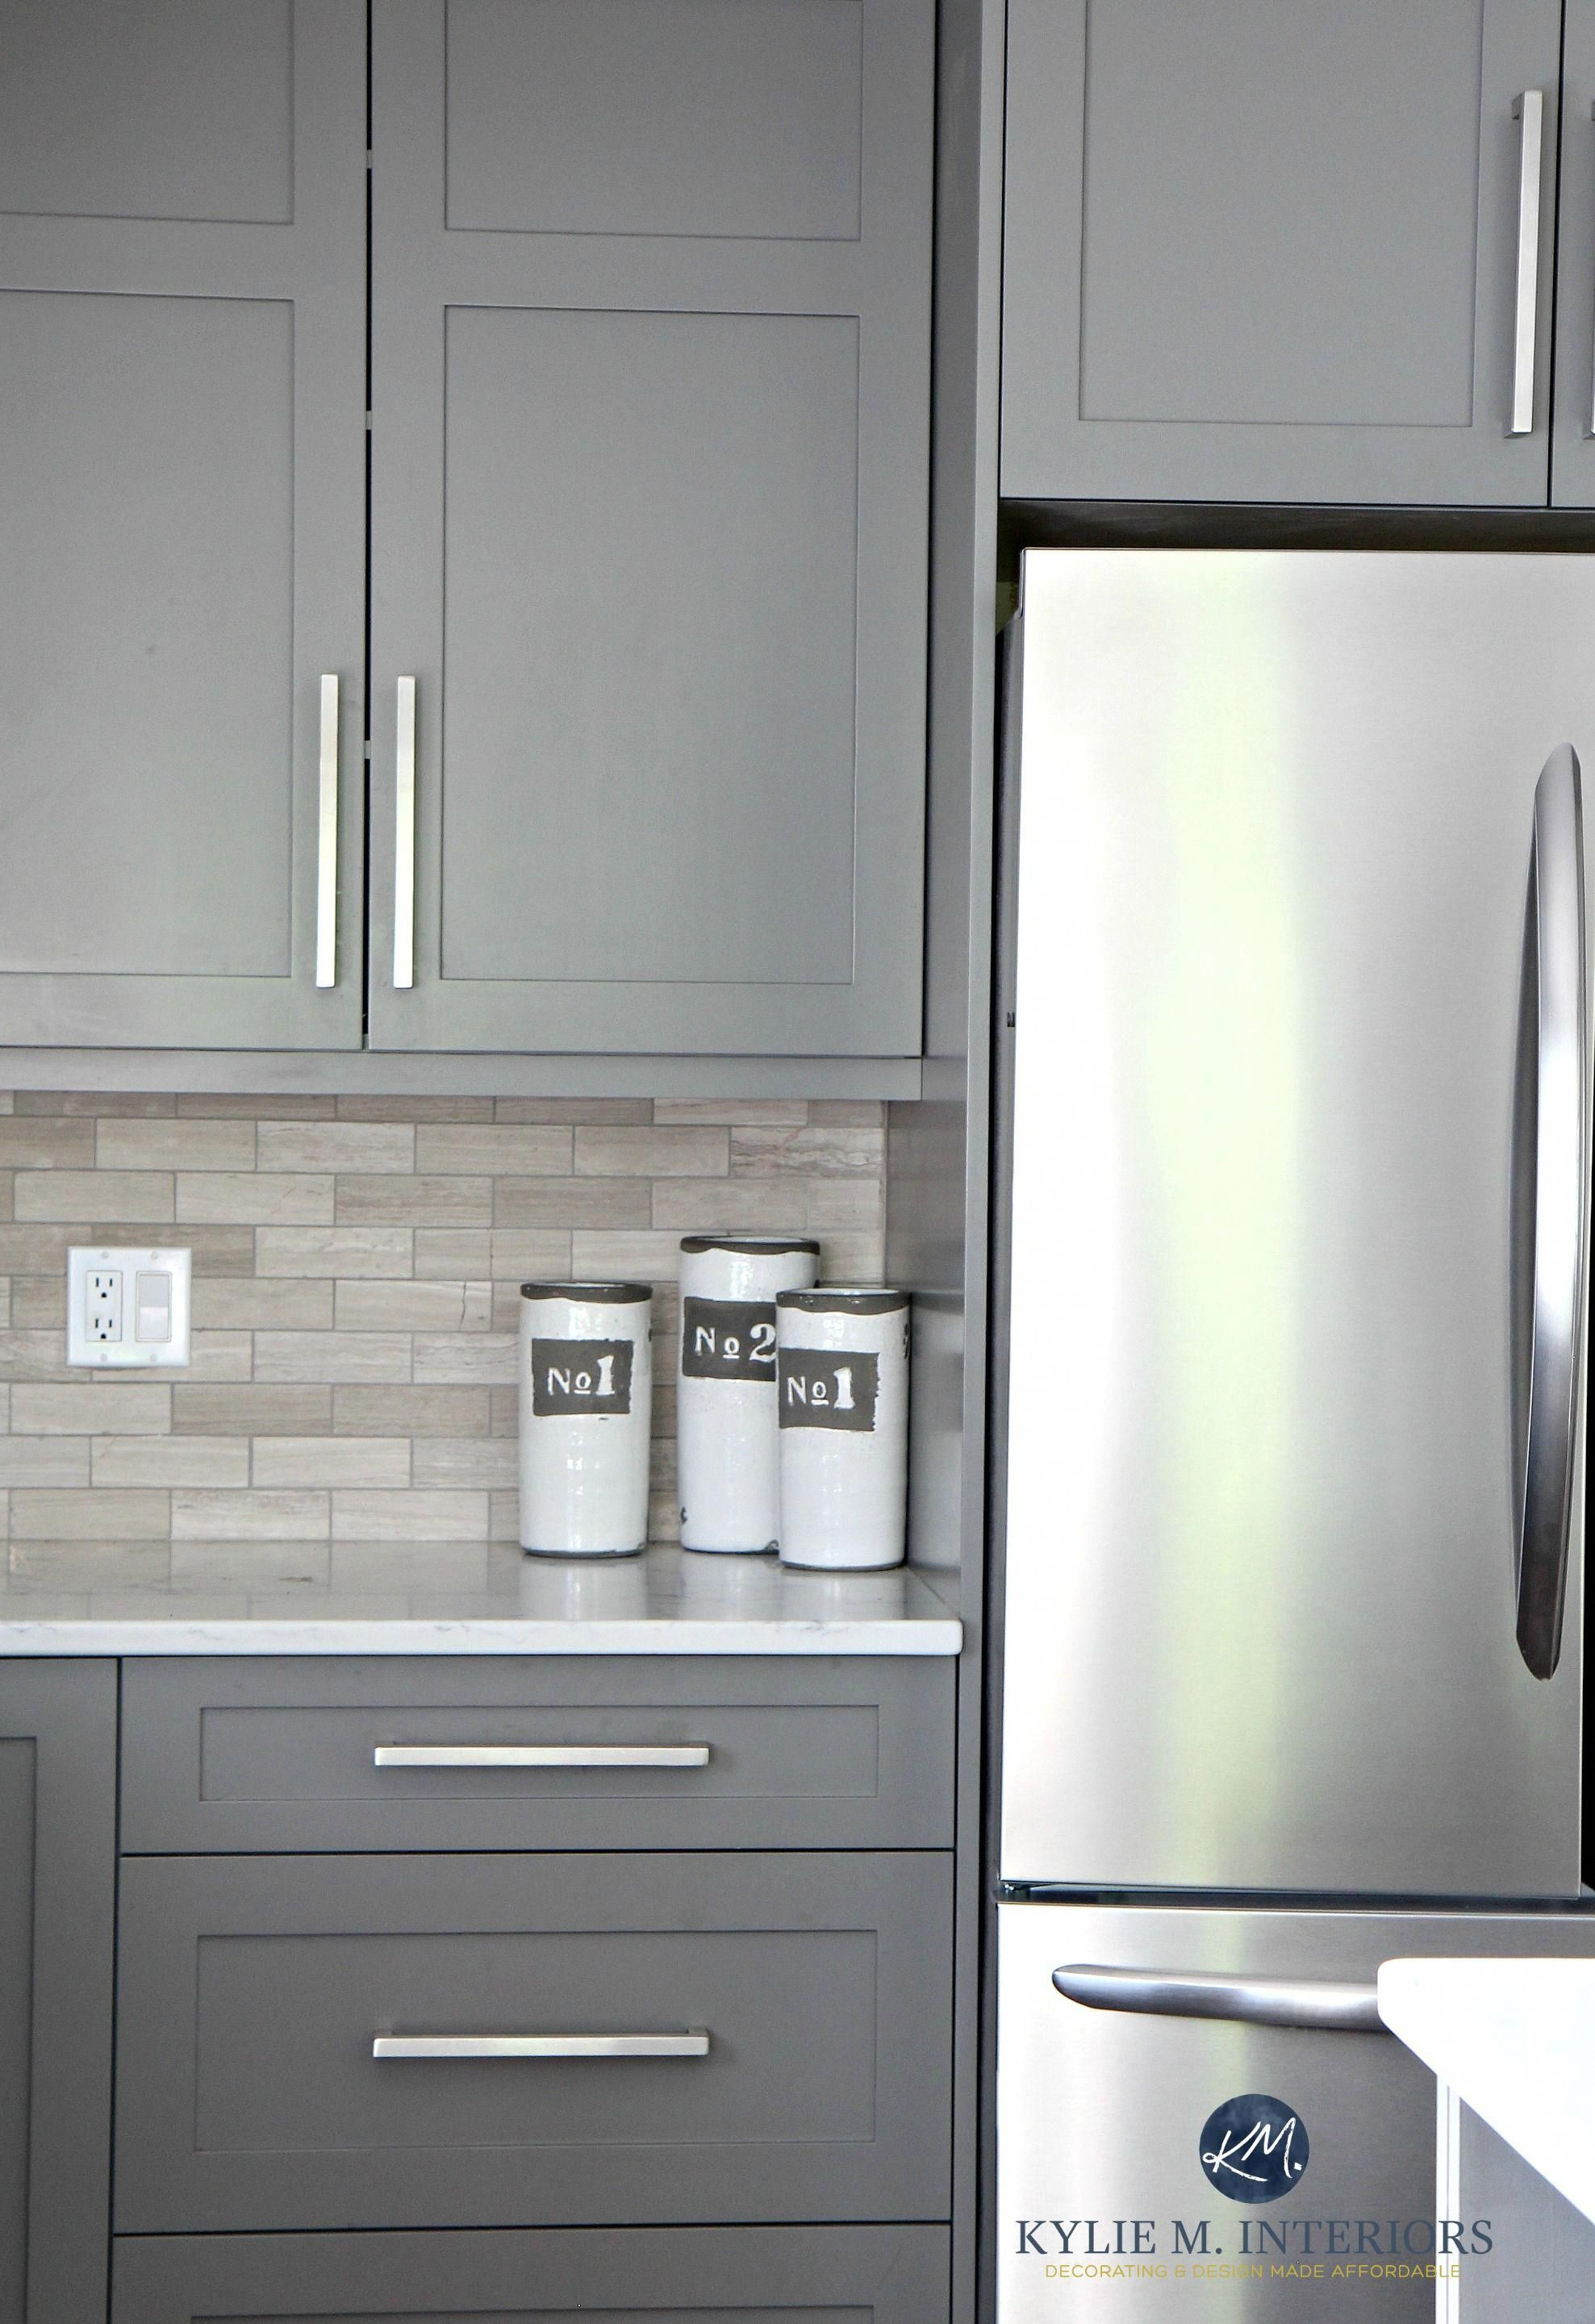 Benjamin moore amherst gray painted cabinets driftwood backspash in